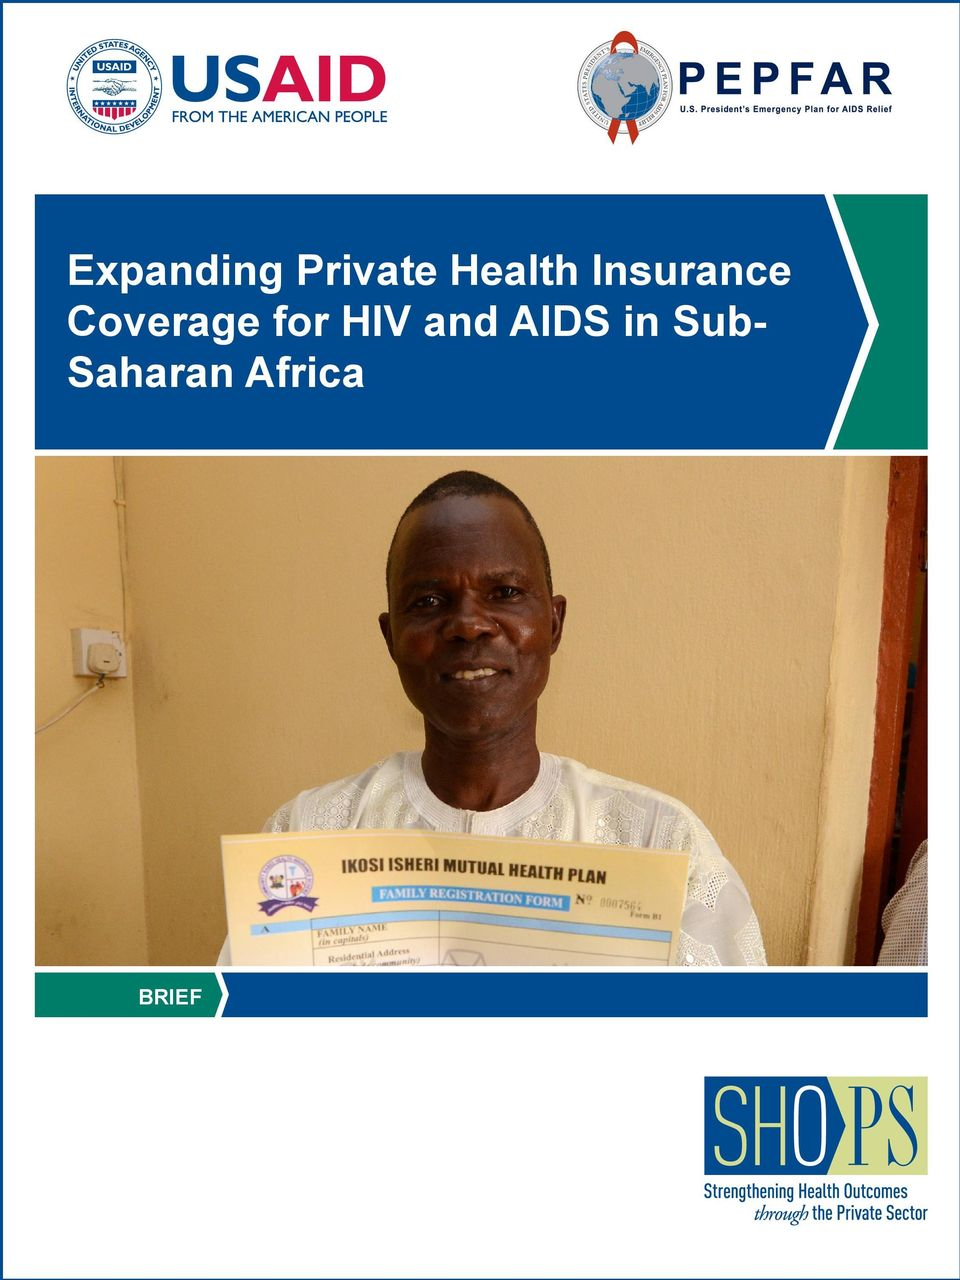 Coverage for HIV and